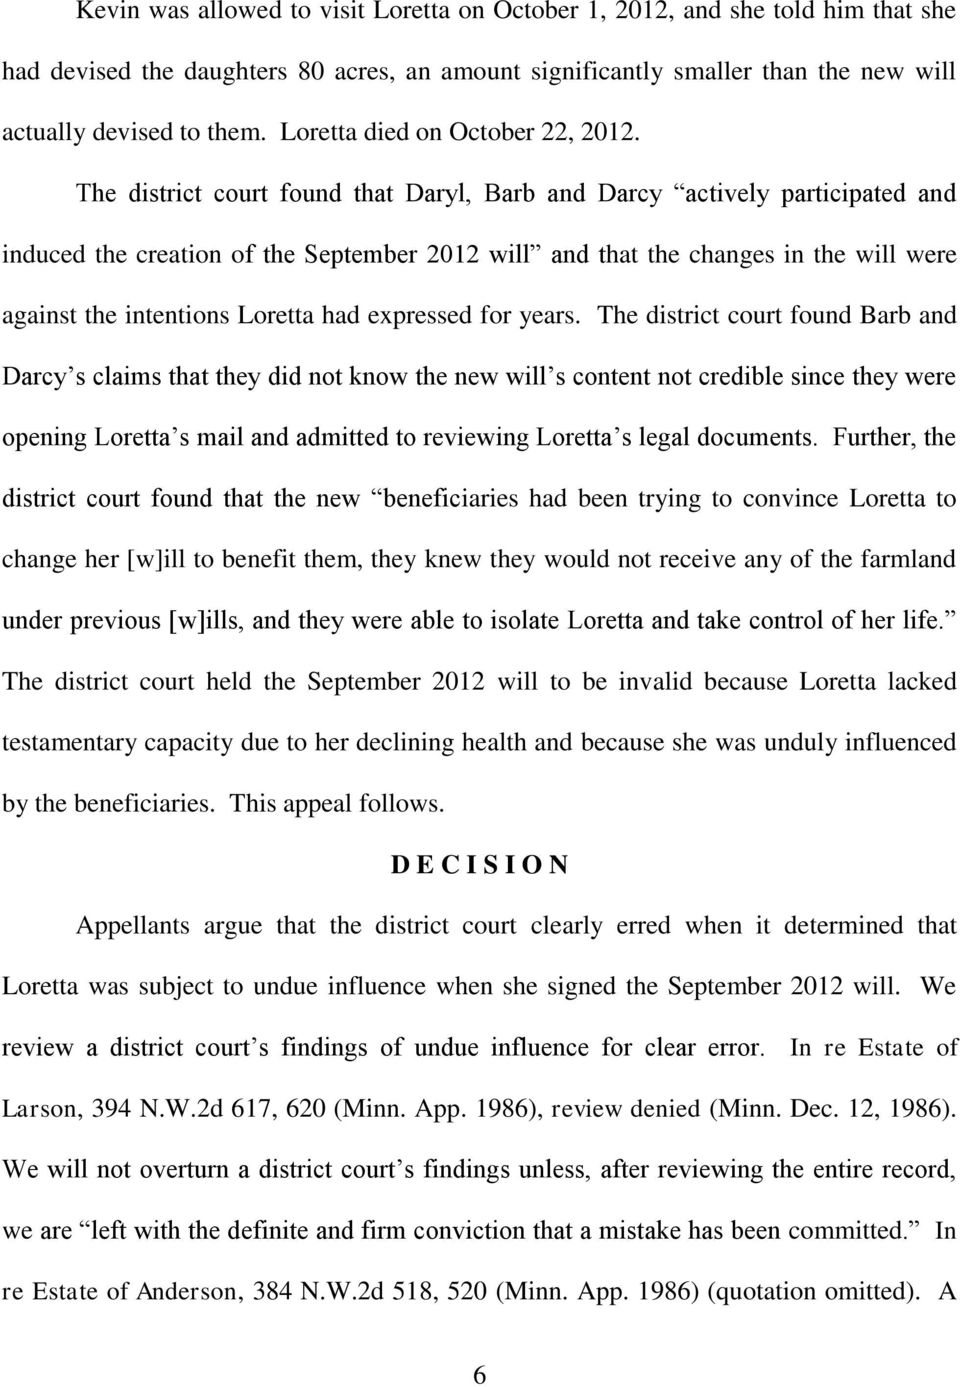 The district court found that Daryl, Barb and Darcy actively participated and induced the creation of the September 2012 will and that the changes in the will were against the intentions Loretta had